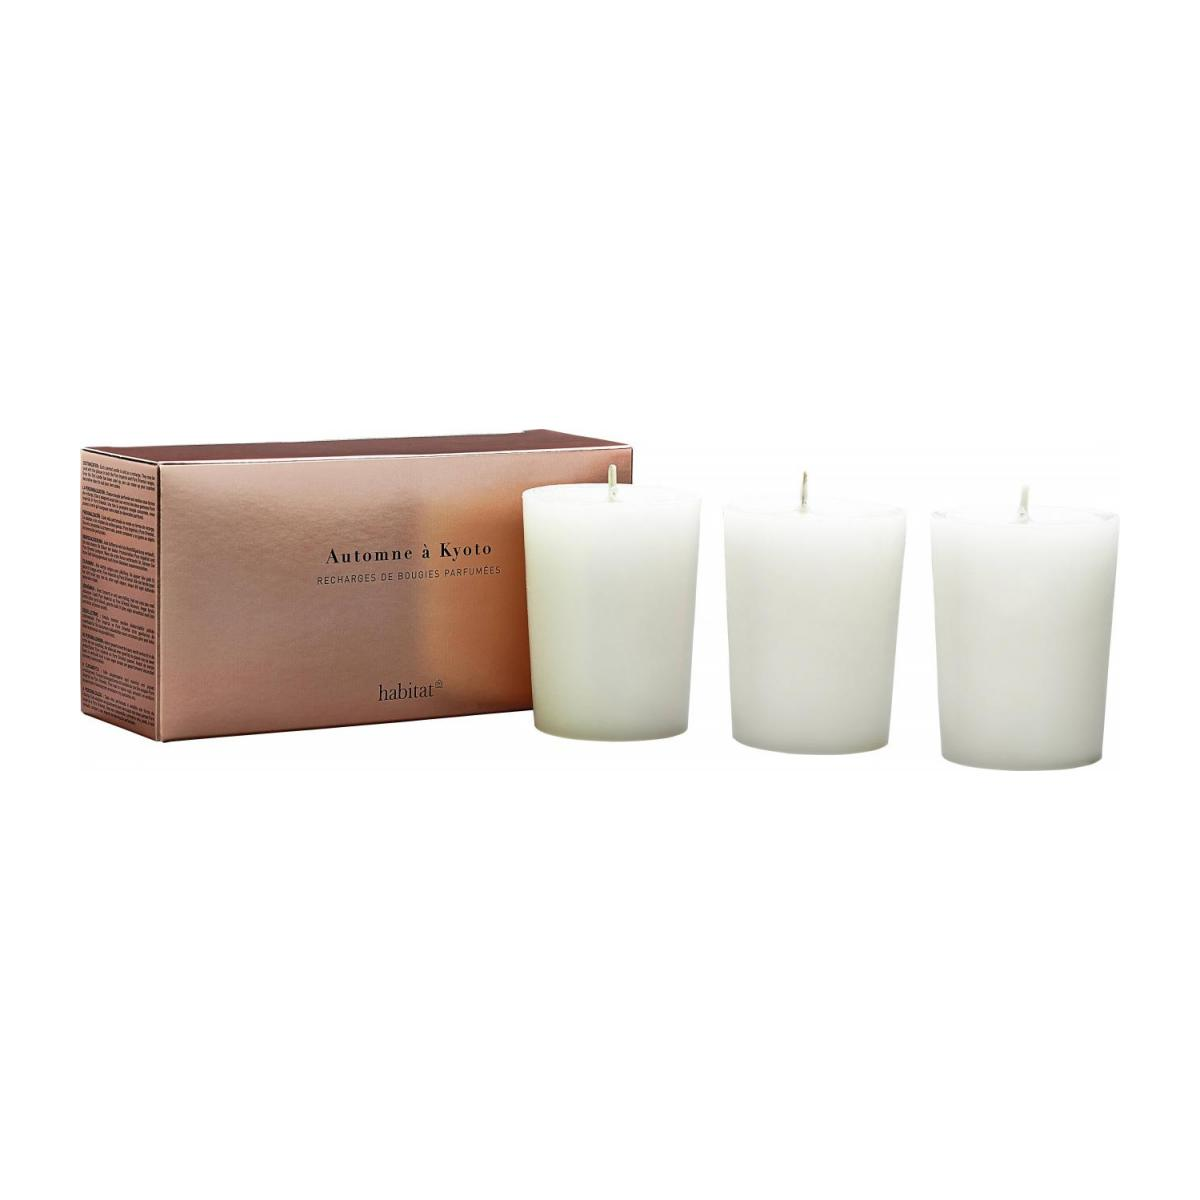 Refill for 3 Kyoto scented candles, 3 x 150 g n°1